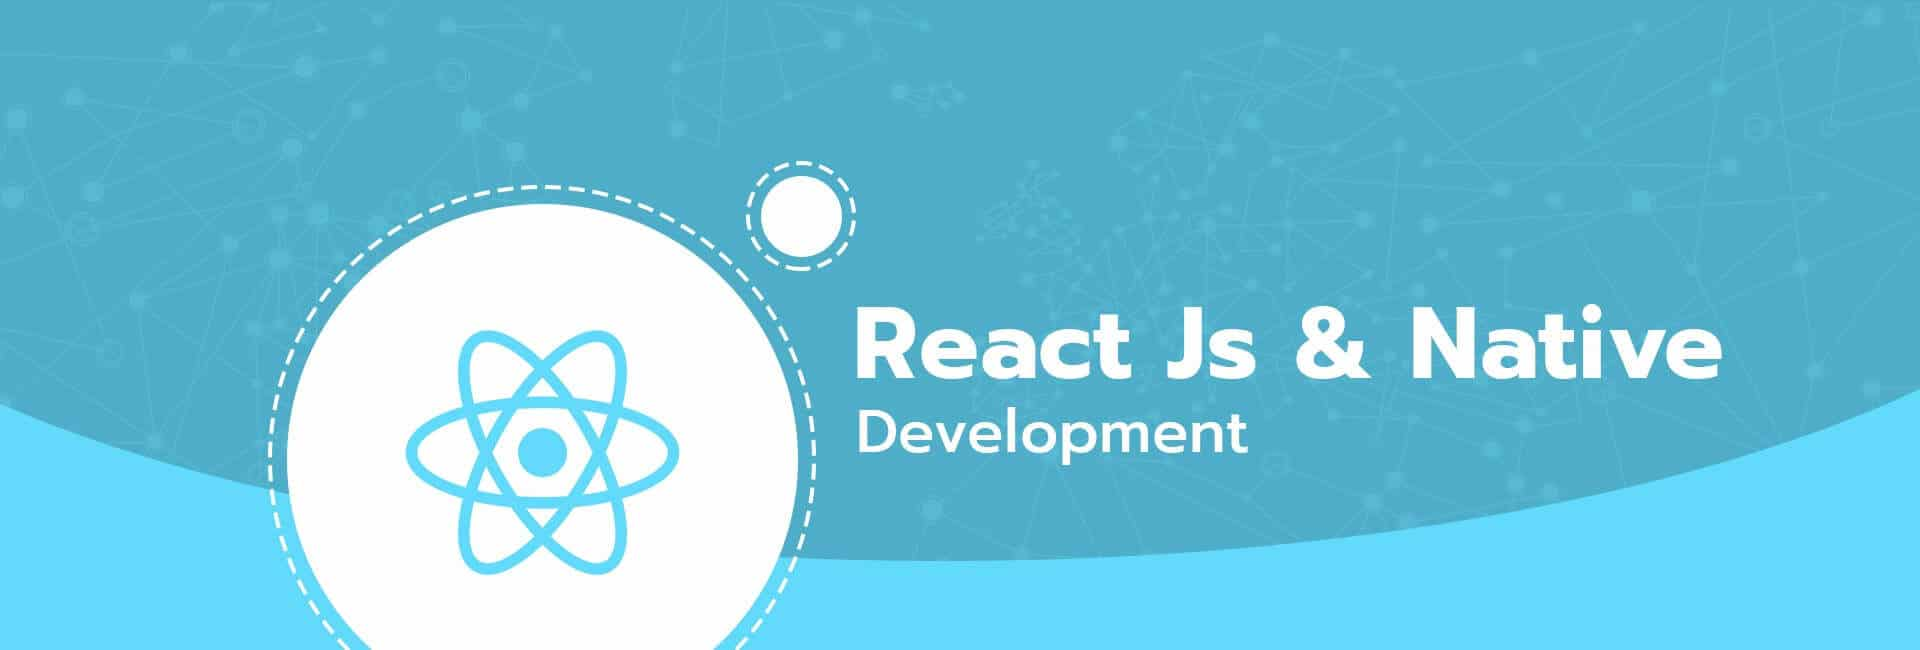 React JS Development Services - SystemOneX